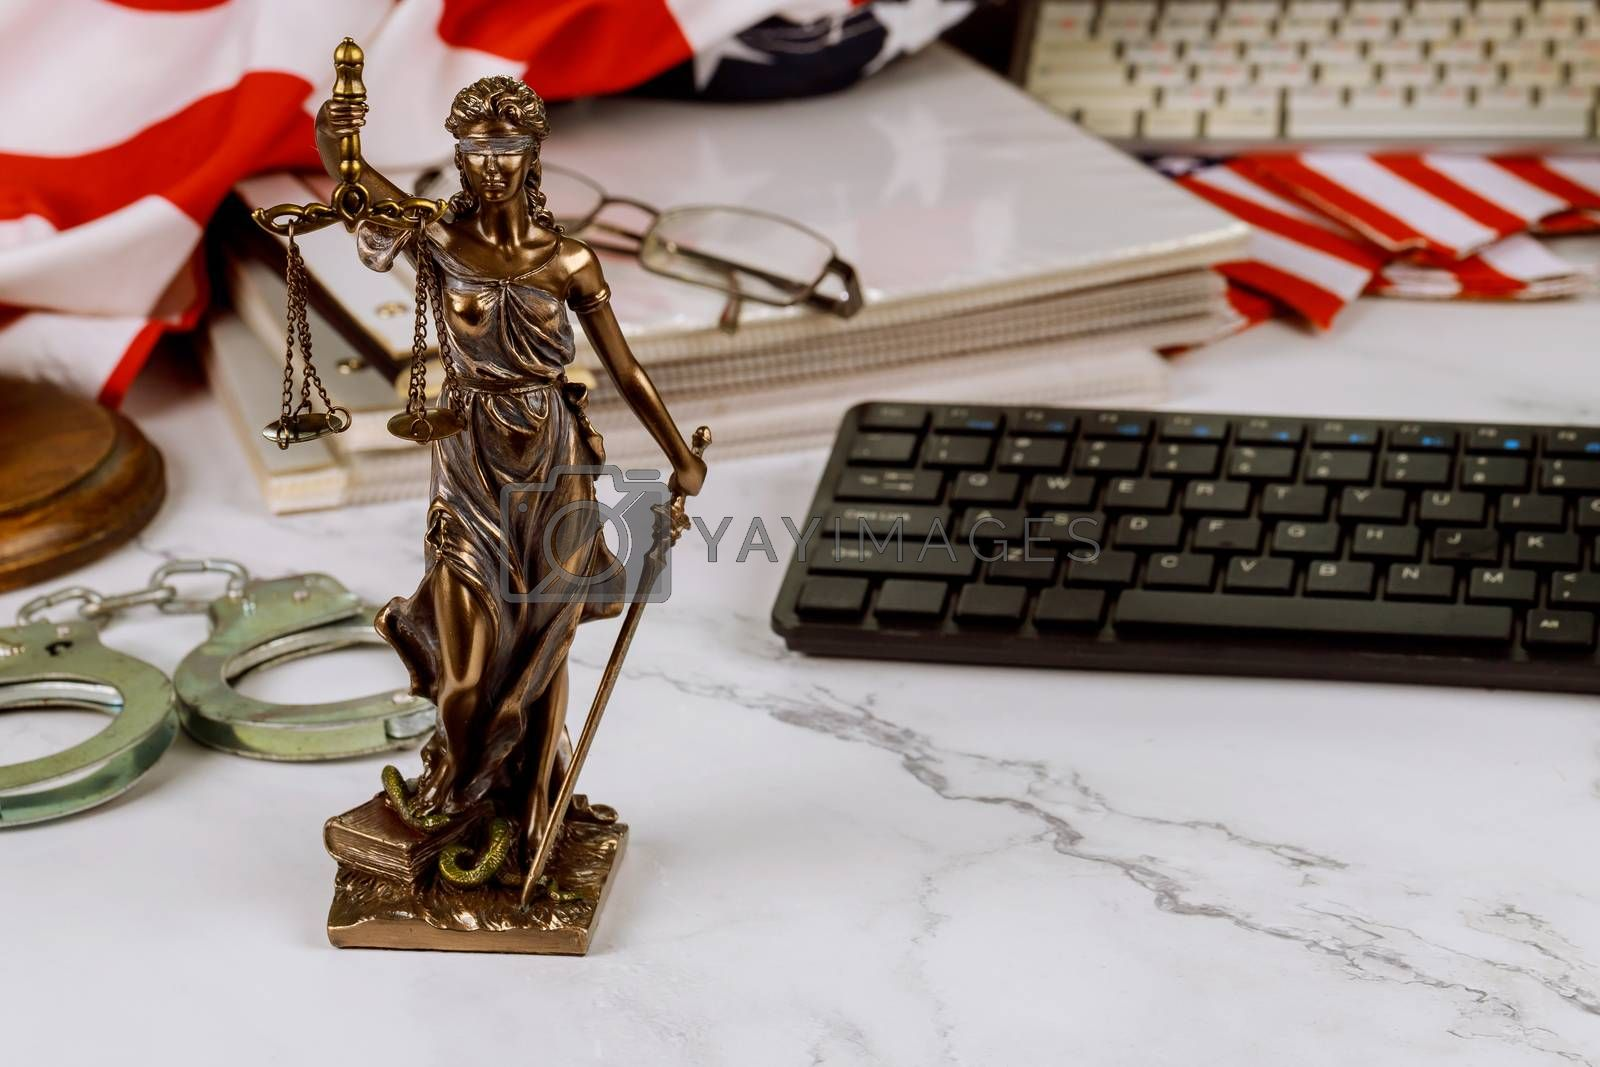 Legal office of lawyers and attorneys legal bronze model statue of metal handcuffs, judge law justice service